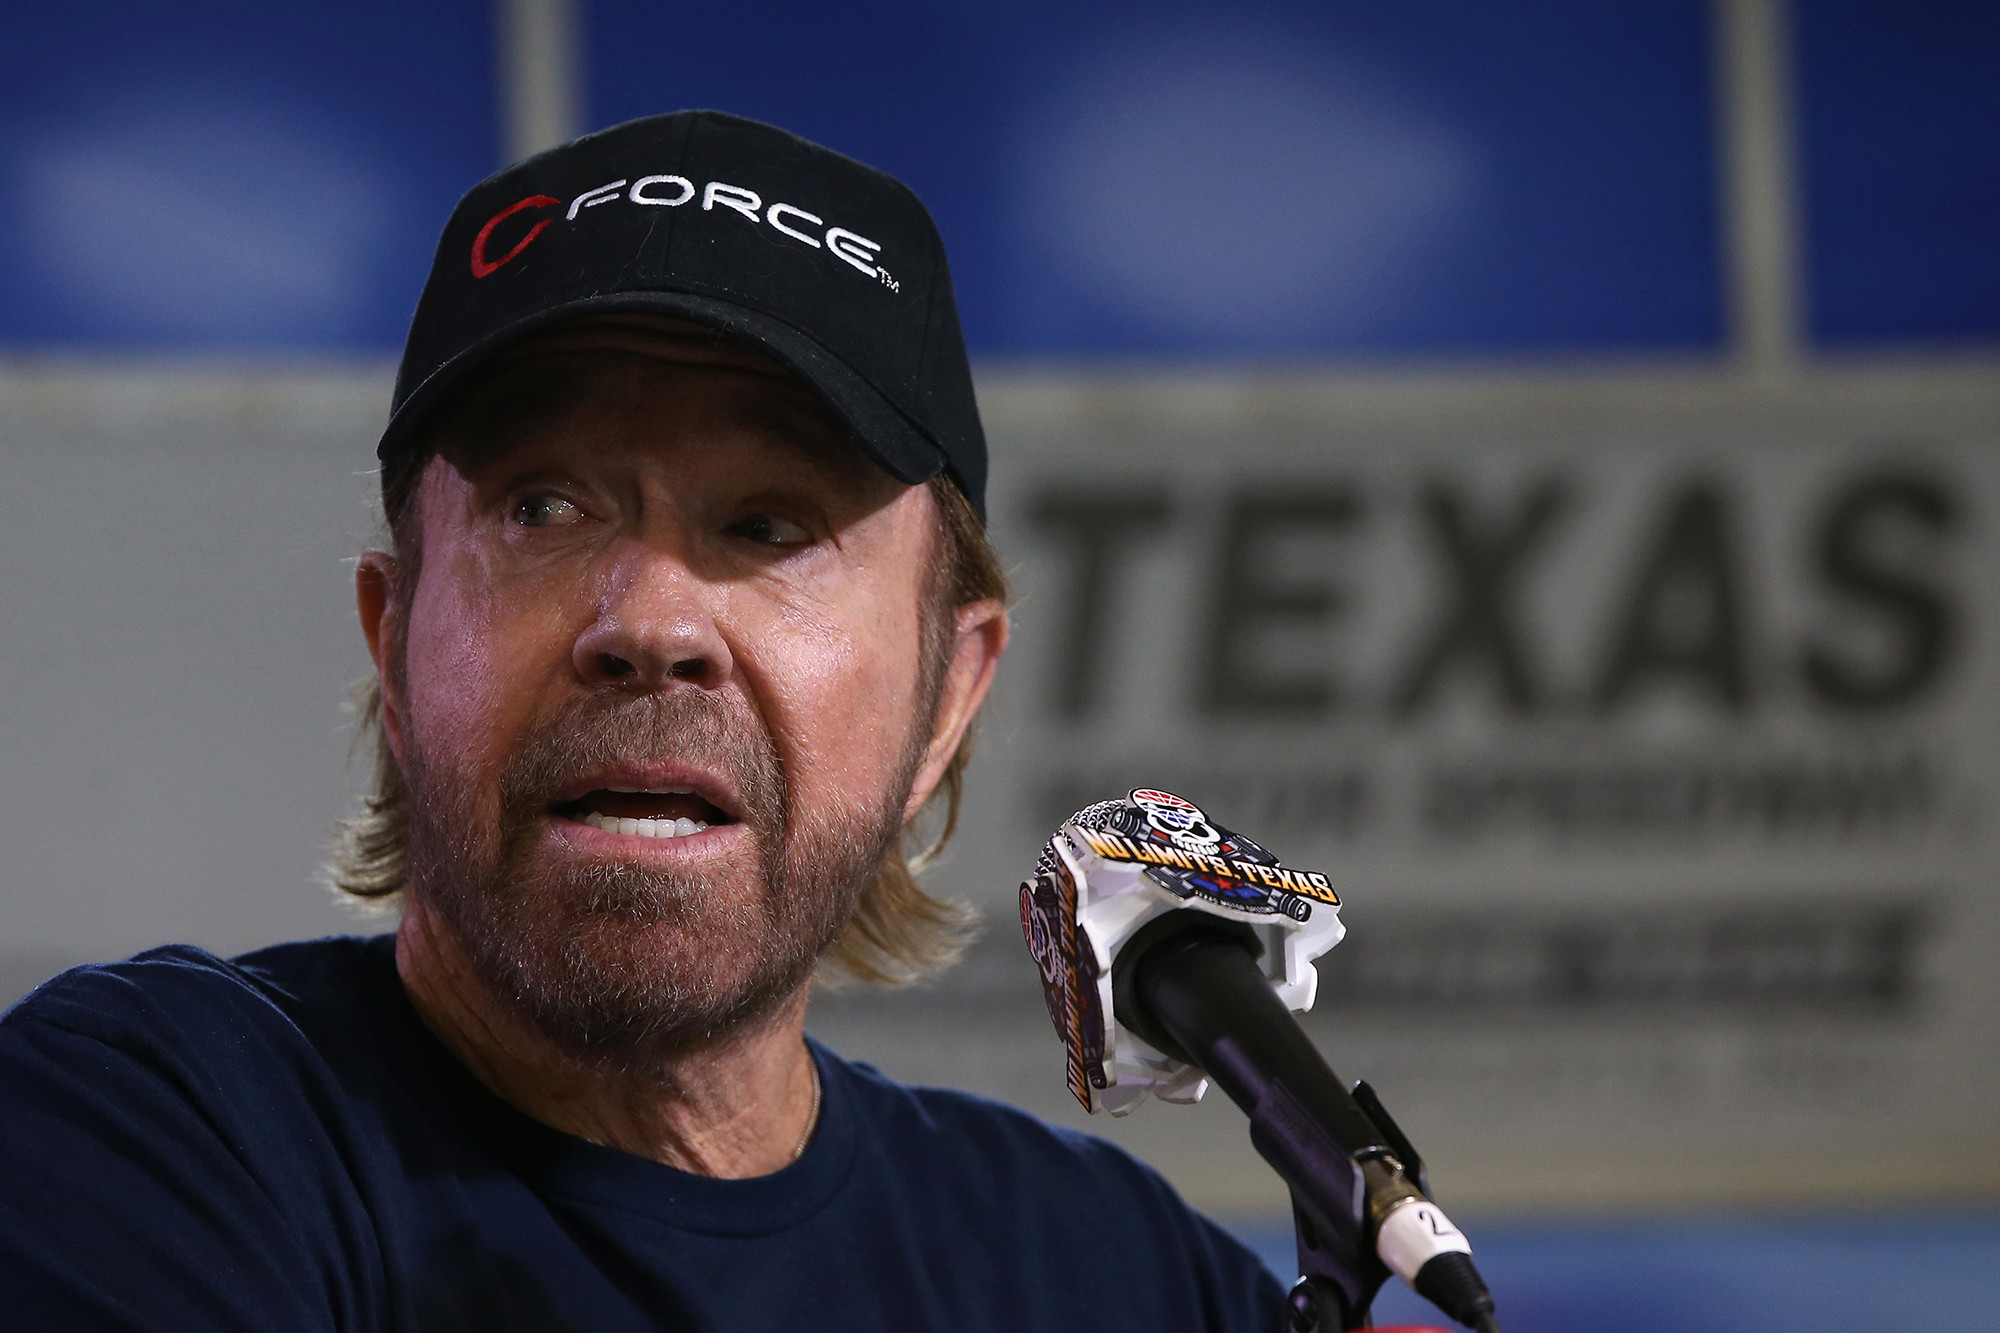 Chuck Norris trashes wannabe lookalike at US Capitol riots